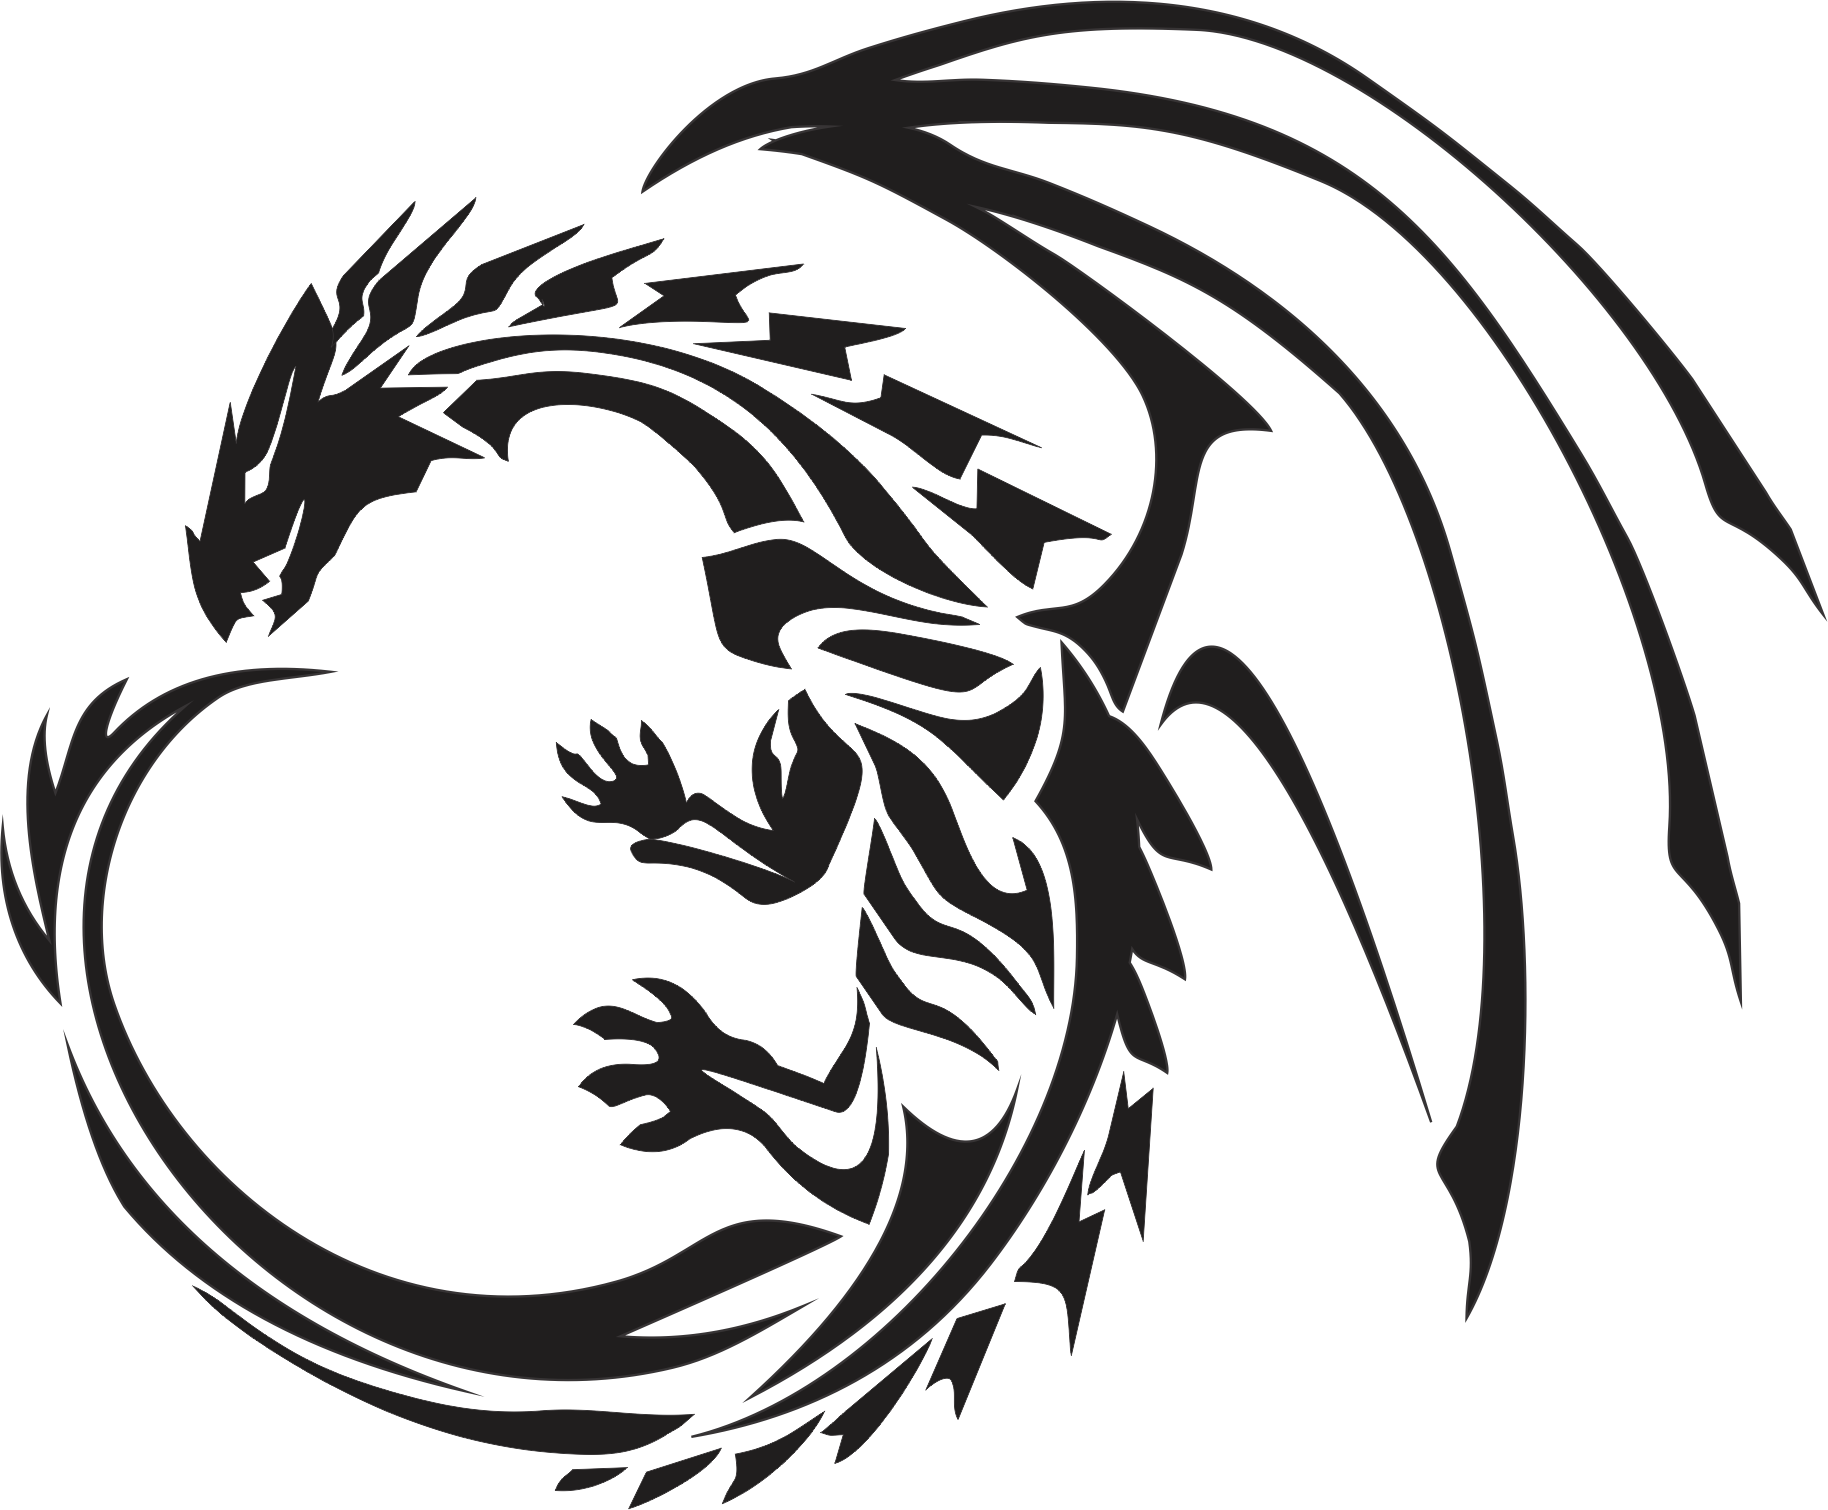 clip art download Tribal Dragon Drawing at GetDrawings